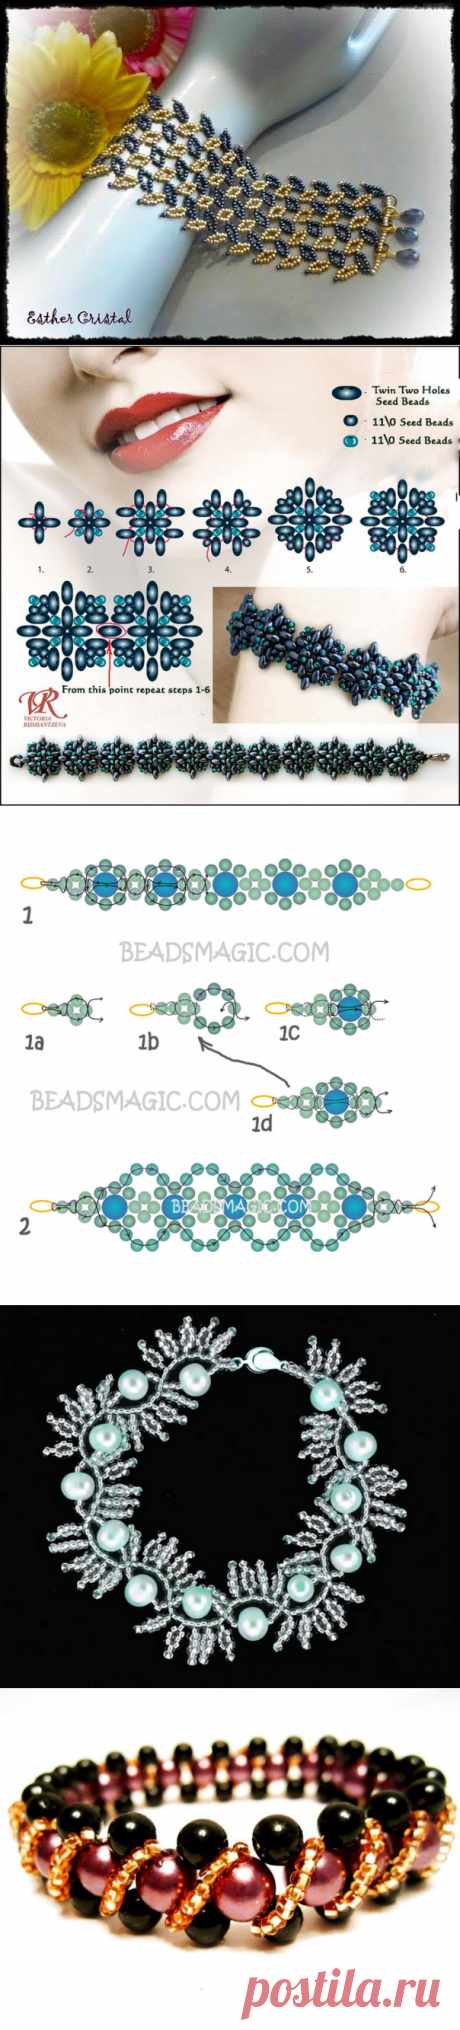 IDEAS AND SCHEMES OF WEAVING BY BEADS